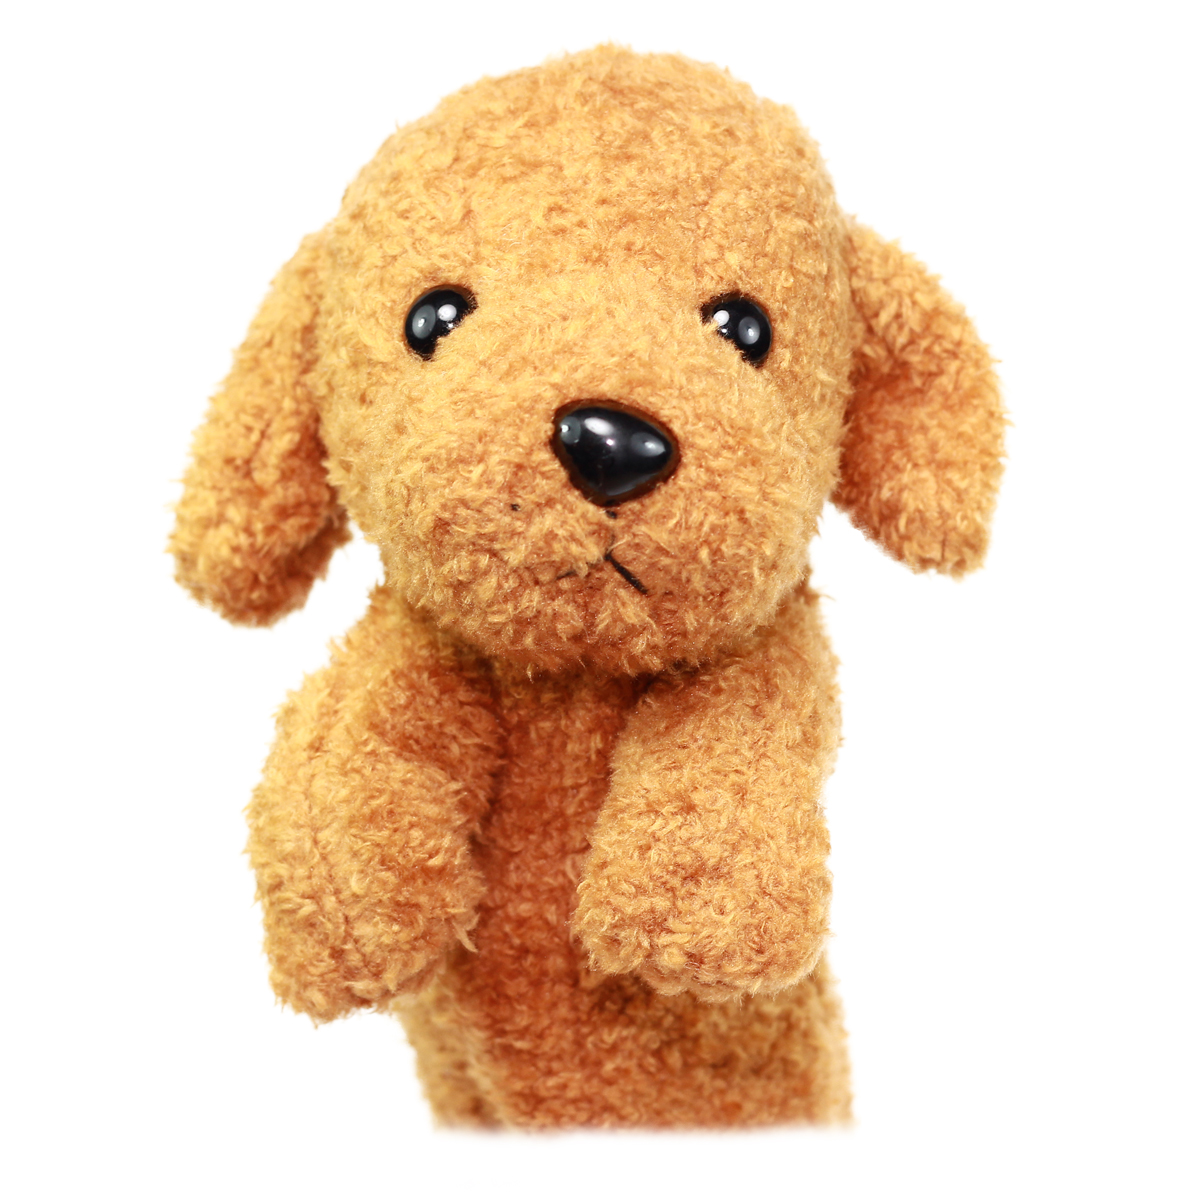 Dog Pencil Case Pouch Stuffed Animal Back To School Collection Fluffy Brown  Poodle Plush 10 Inches